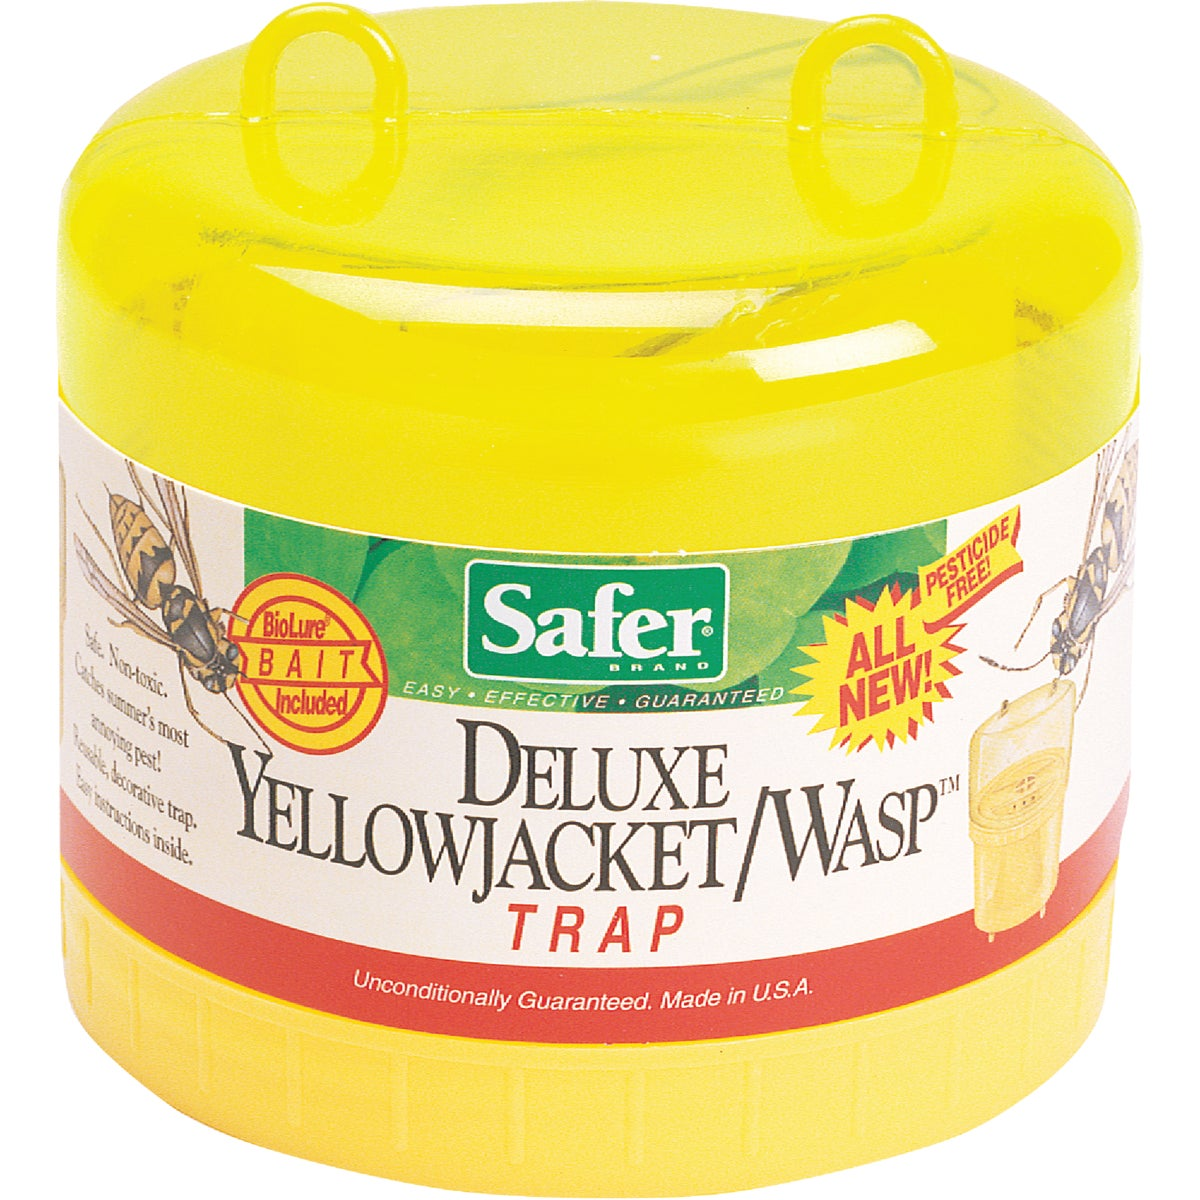 YELLOW JACKET TRAP - 00280 by Woodstream Corp